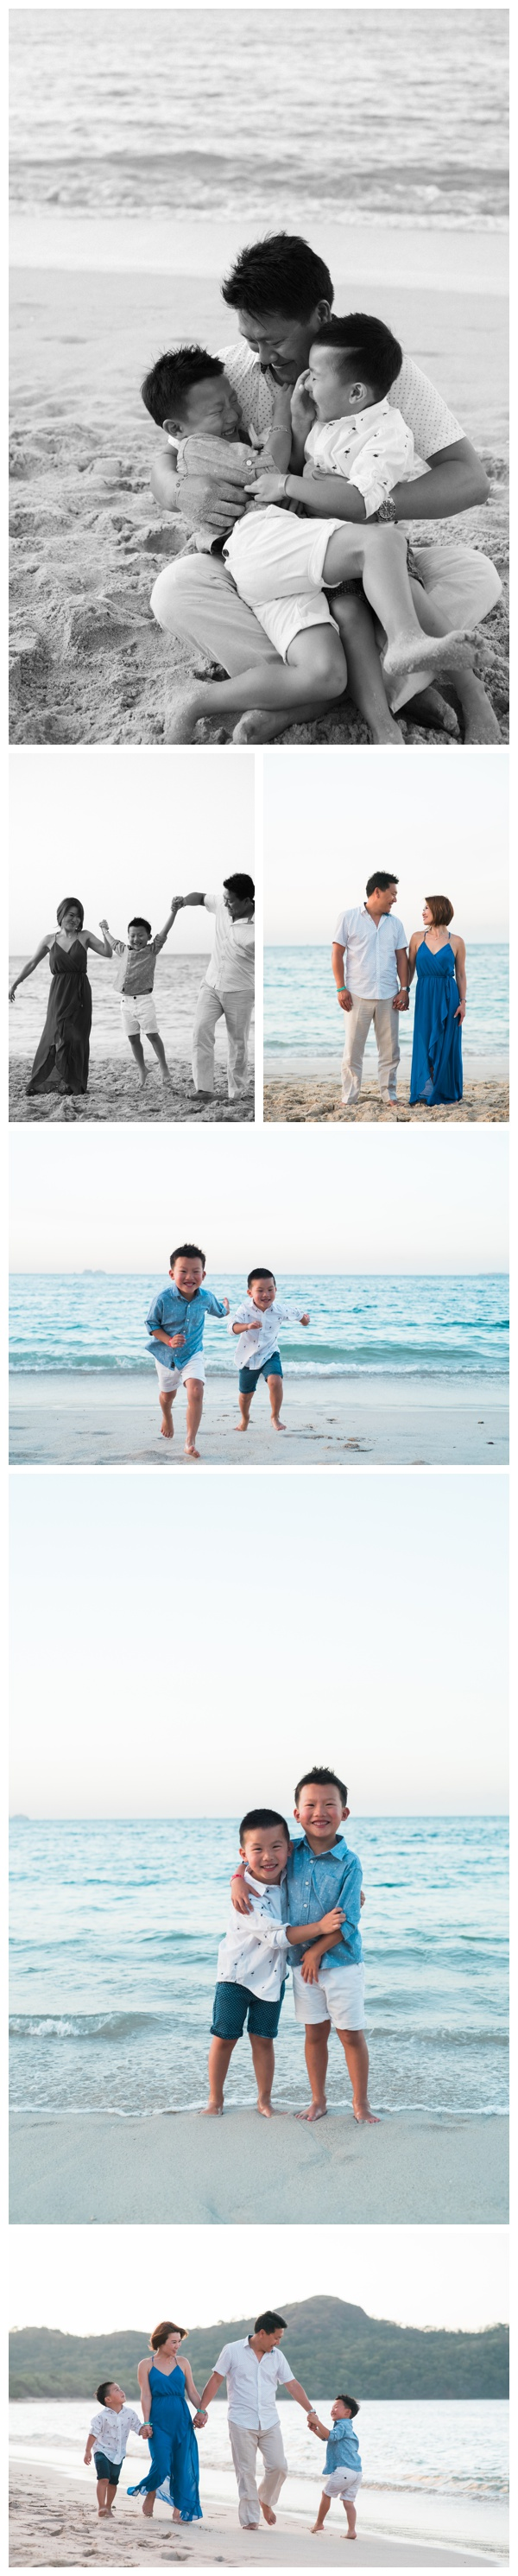 Family Photos on the Beach in Playa Conchal, Costa Rica. Photographed by Kristen M. Brown, Samba to the Sea Photography.